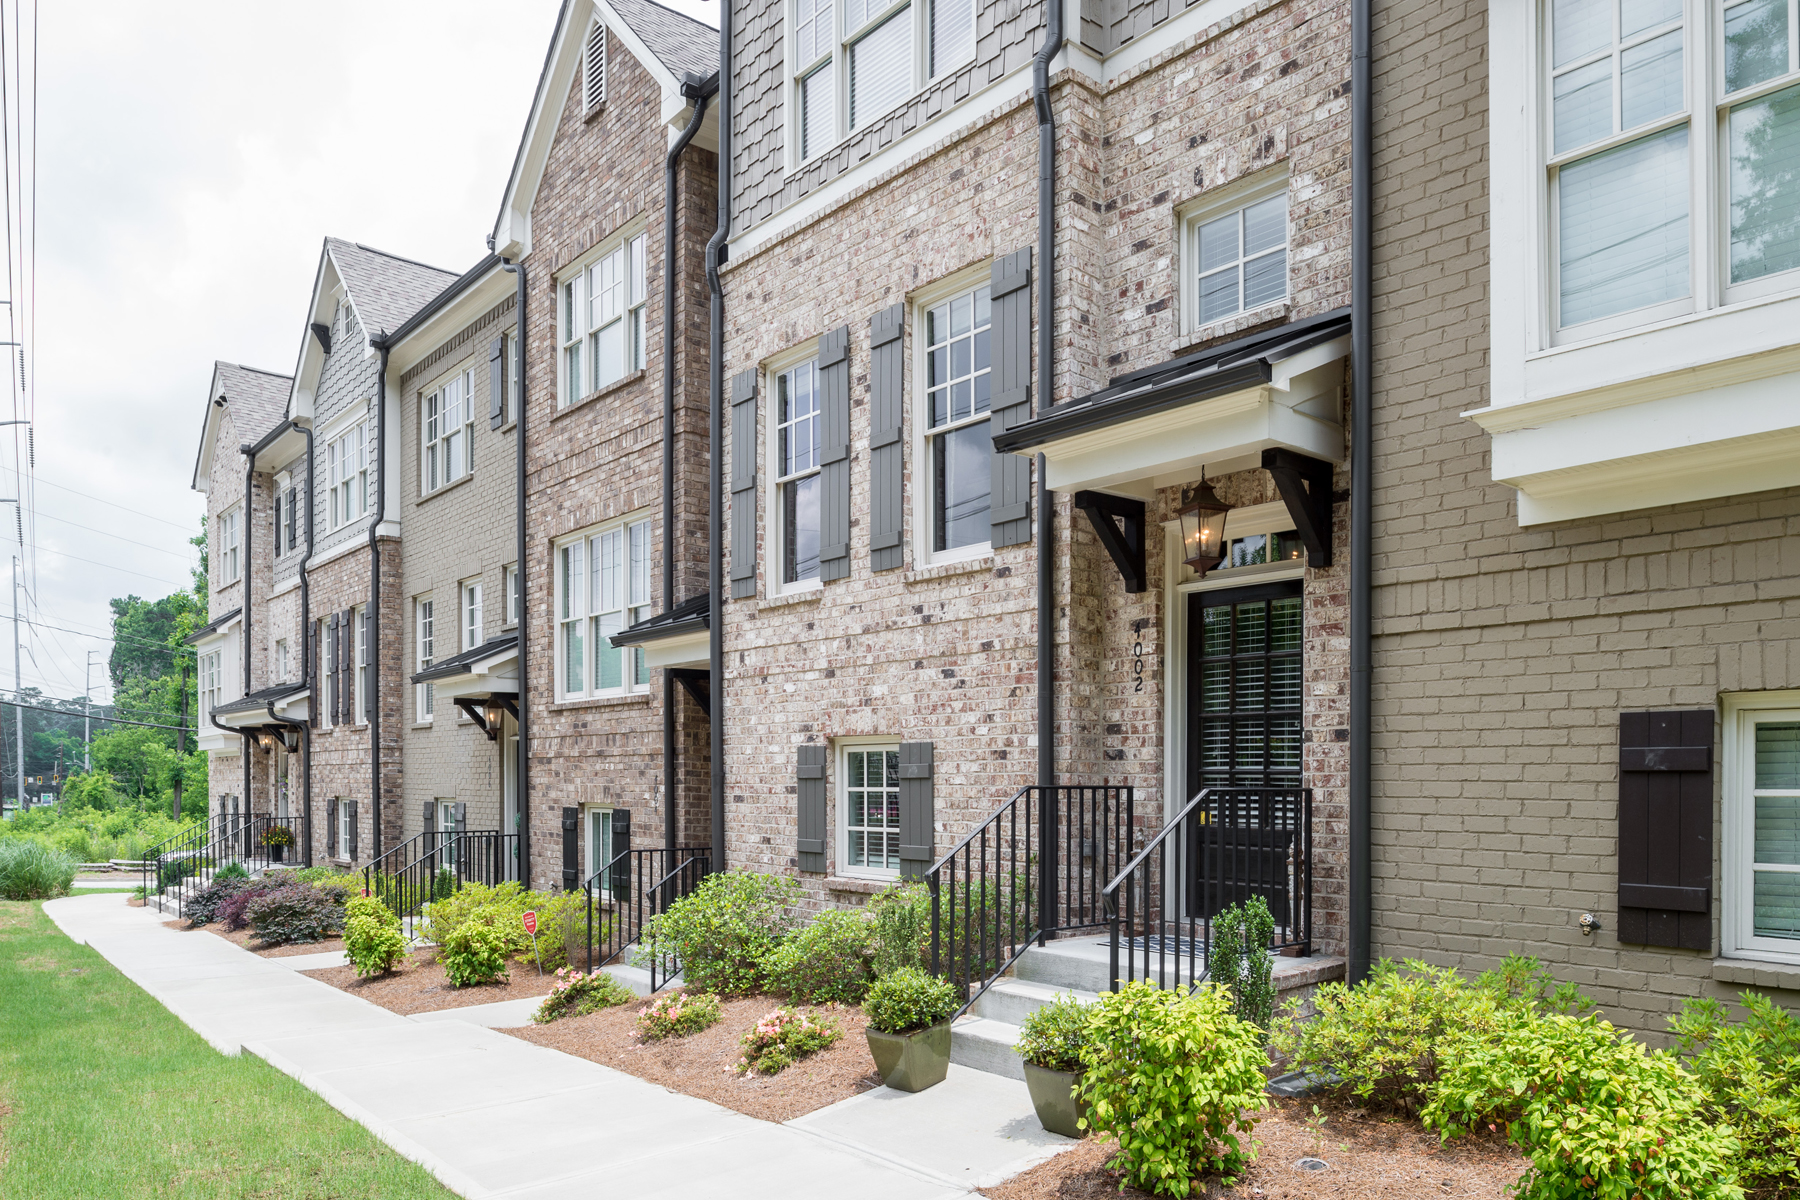 Townhouse for Sale at Gorgeous Townhome at Chastain Preserve 4002 Chastain Preserve Way NE Atlanta, Georgia 30342 United States